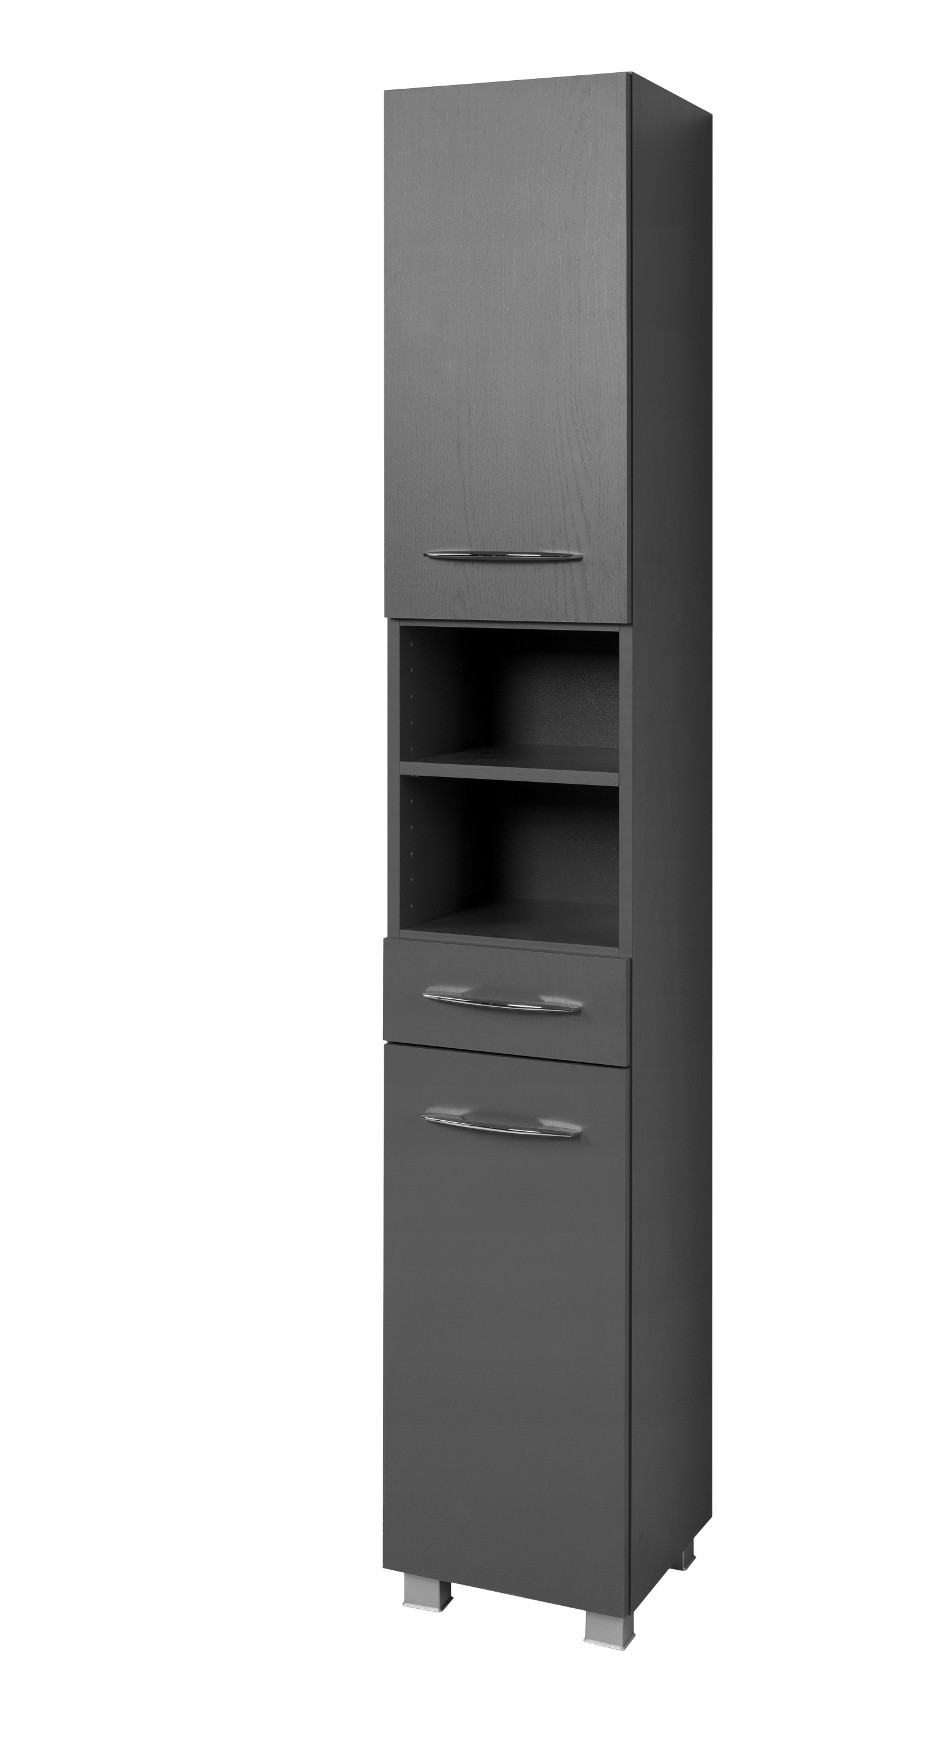 bad hochschrank portofino 2 t rig 1 schubkasten 30 cm. Black Bedroom Furniture Sets. Home Design Ideas